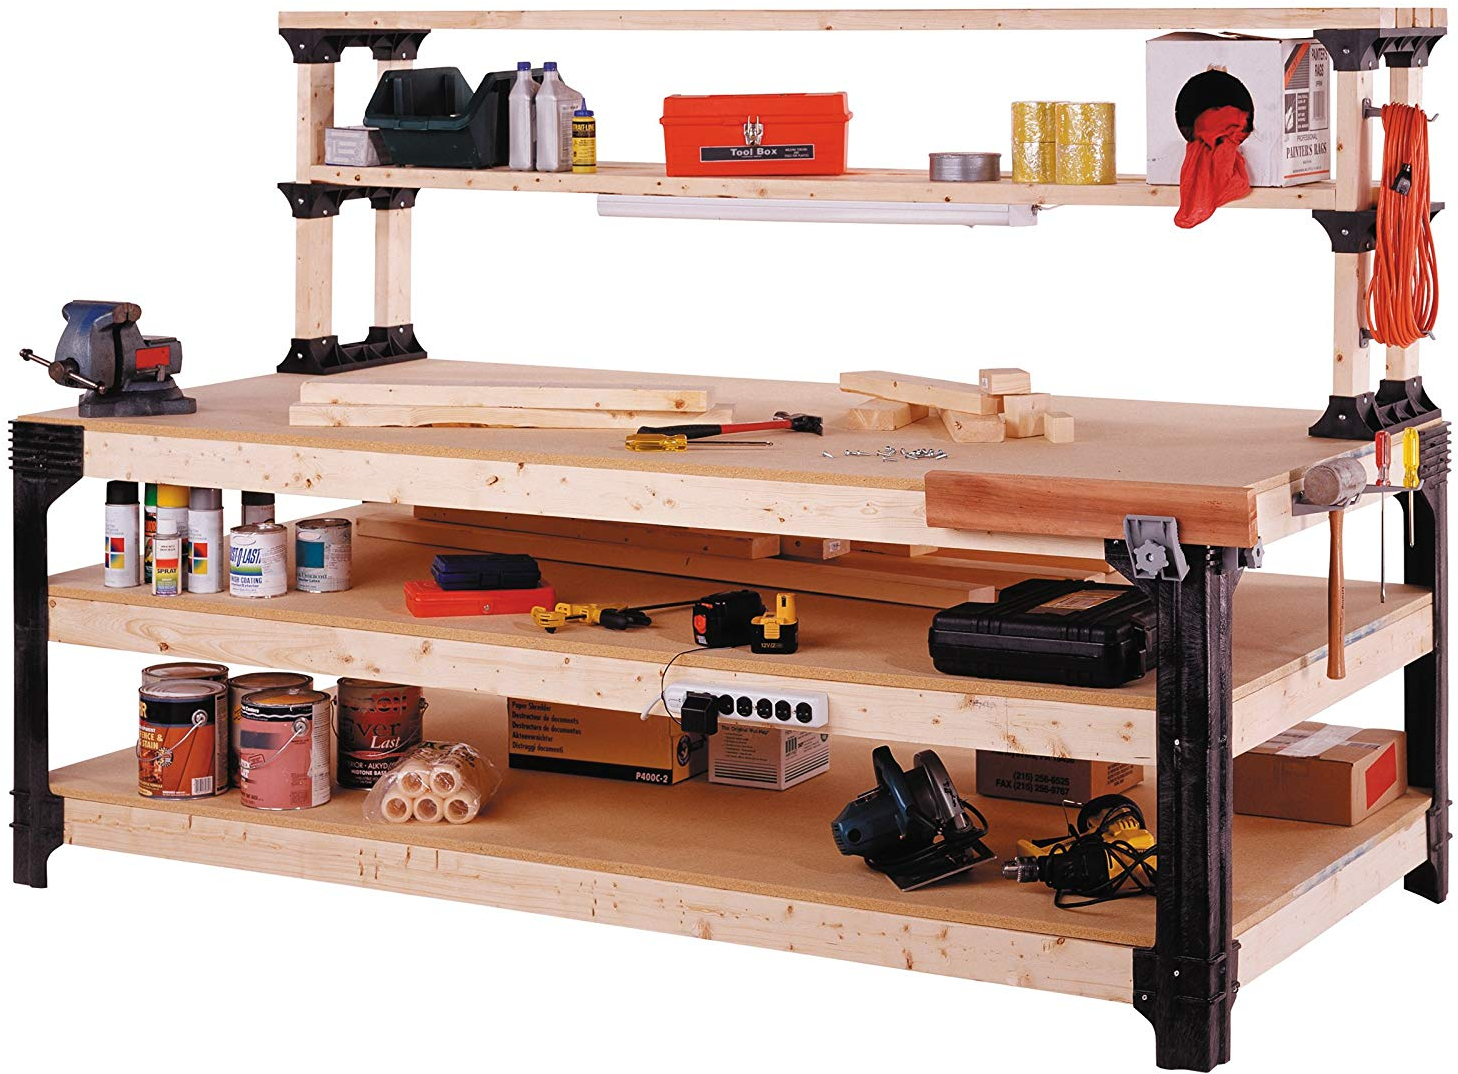 Marvelous Details About New Workbench Table Kit Diy Bench Custom Storage Wooden Shelf Garage Shop 2 X 4 Pabps2019 Chair Design Images Pabps2019Com